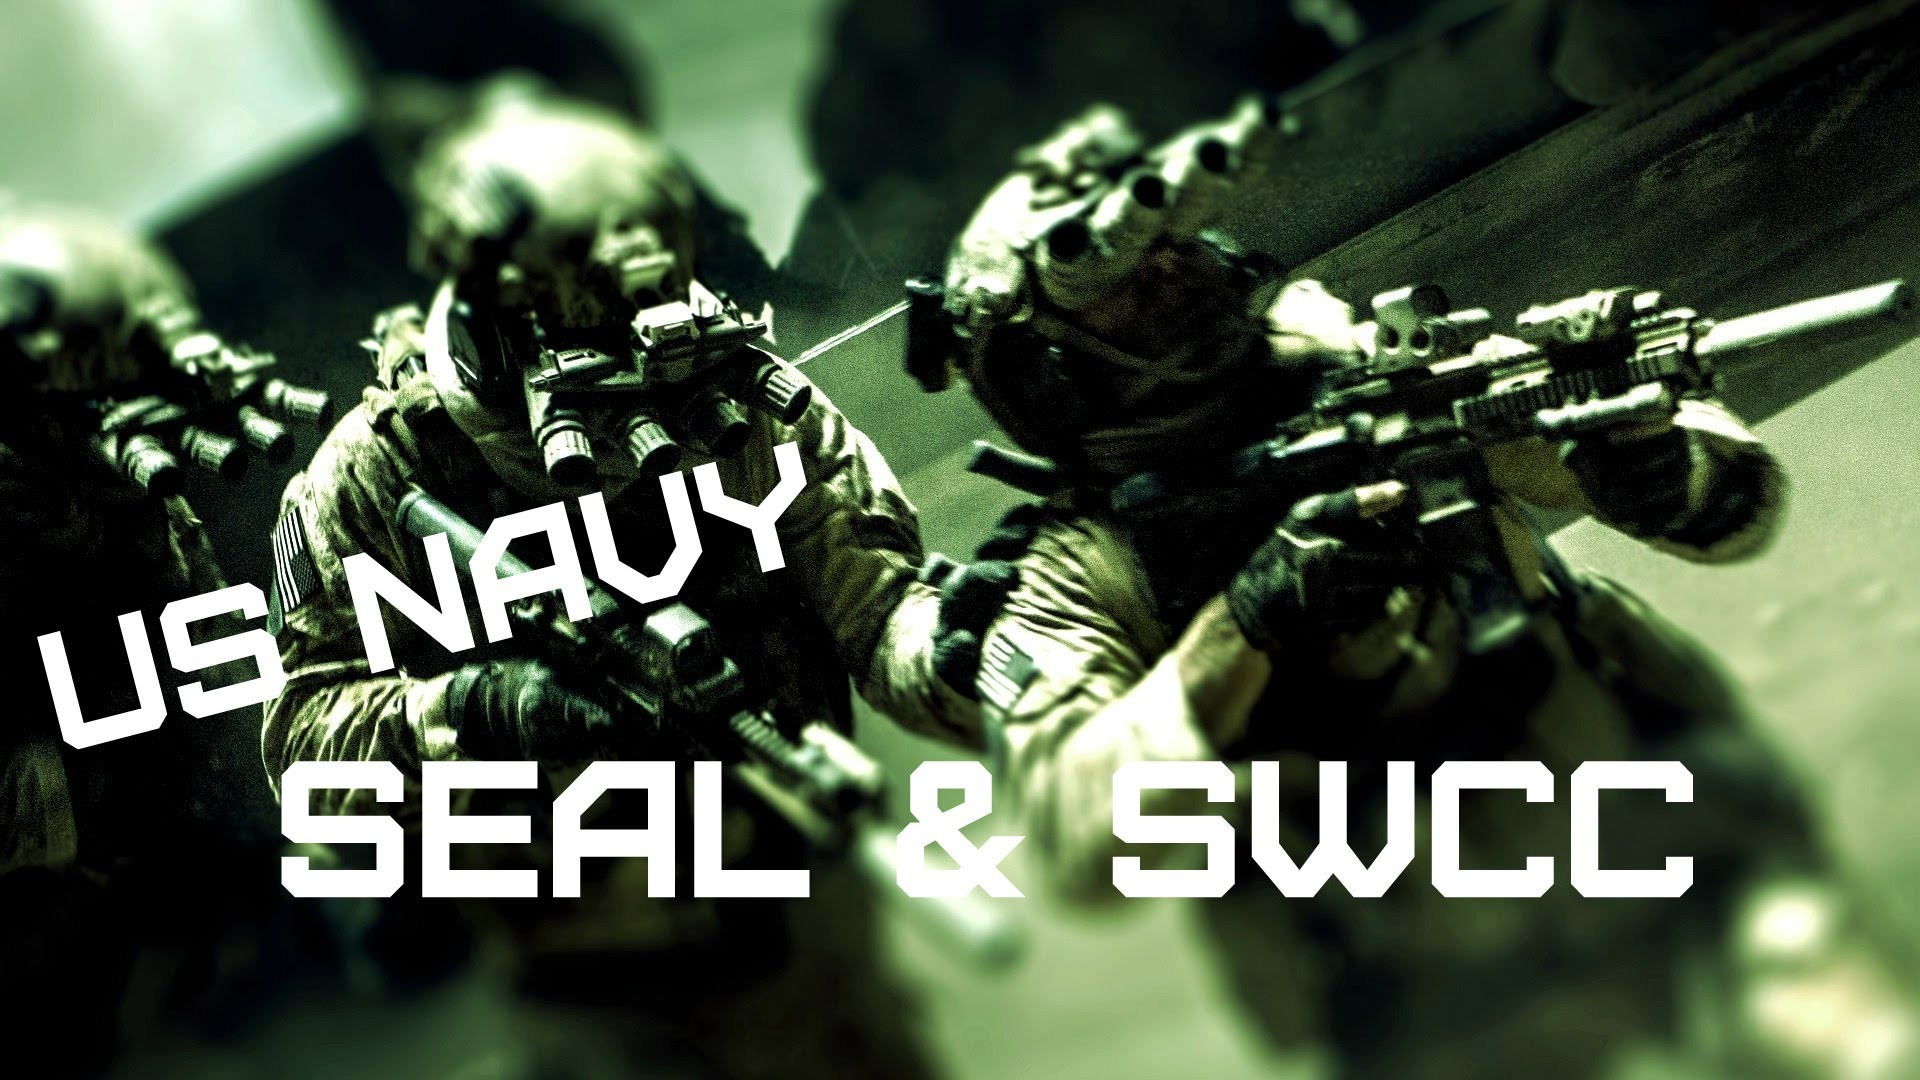 United States Navy • SEALs and SWCC – YouTube